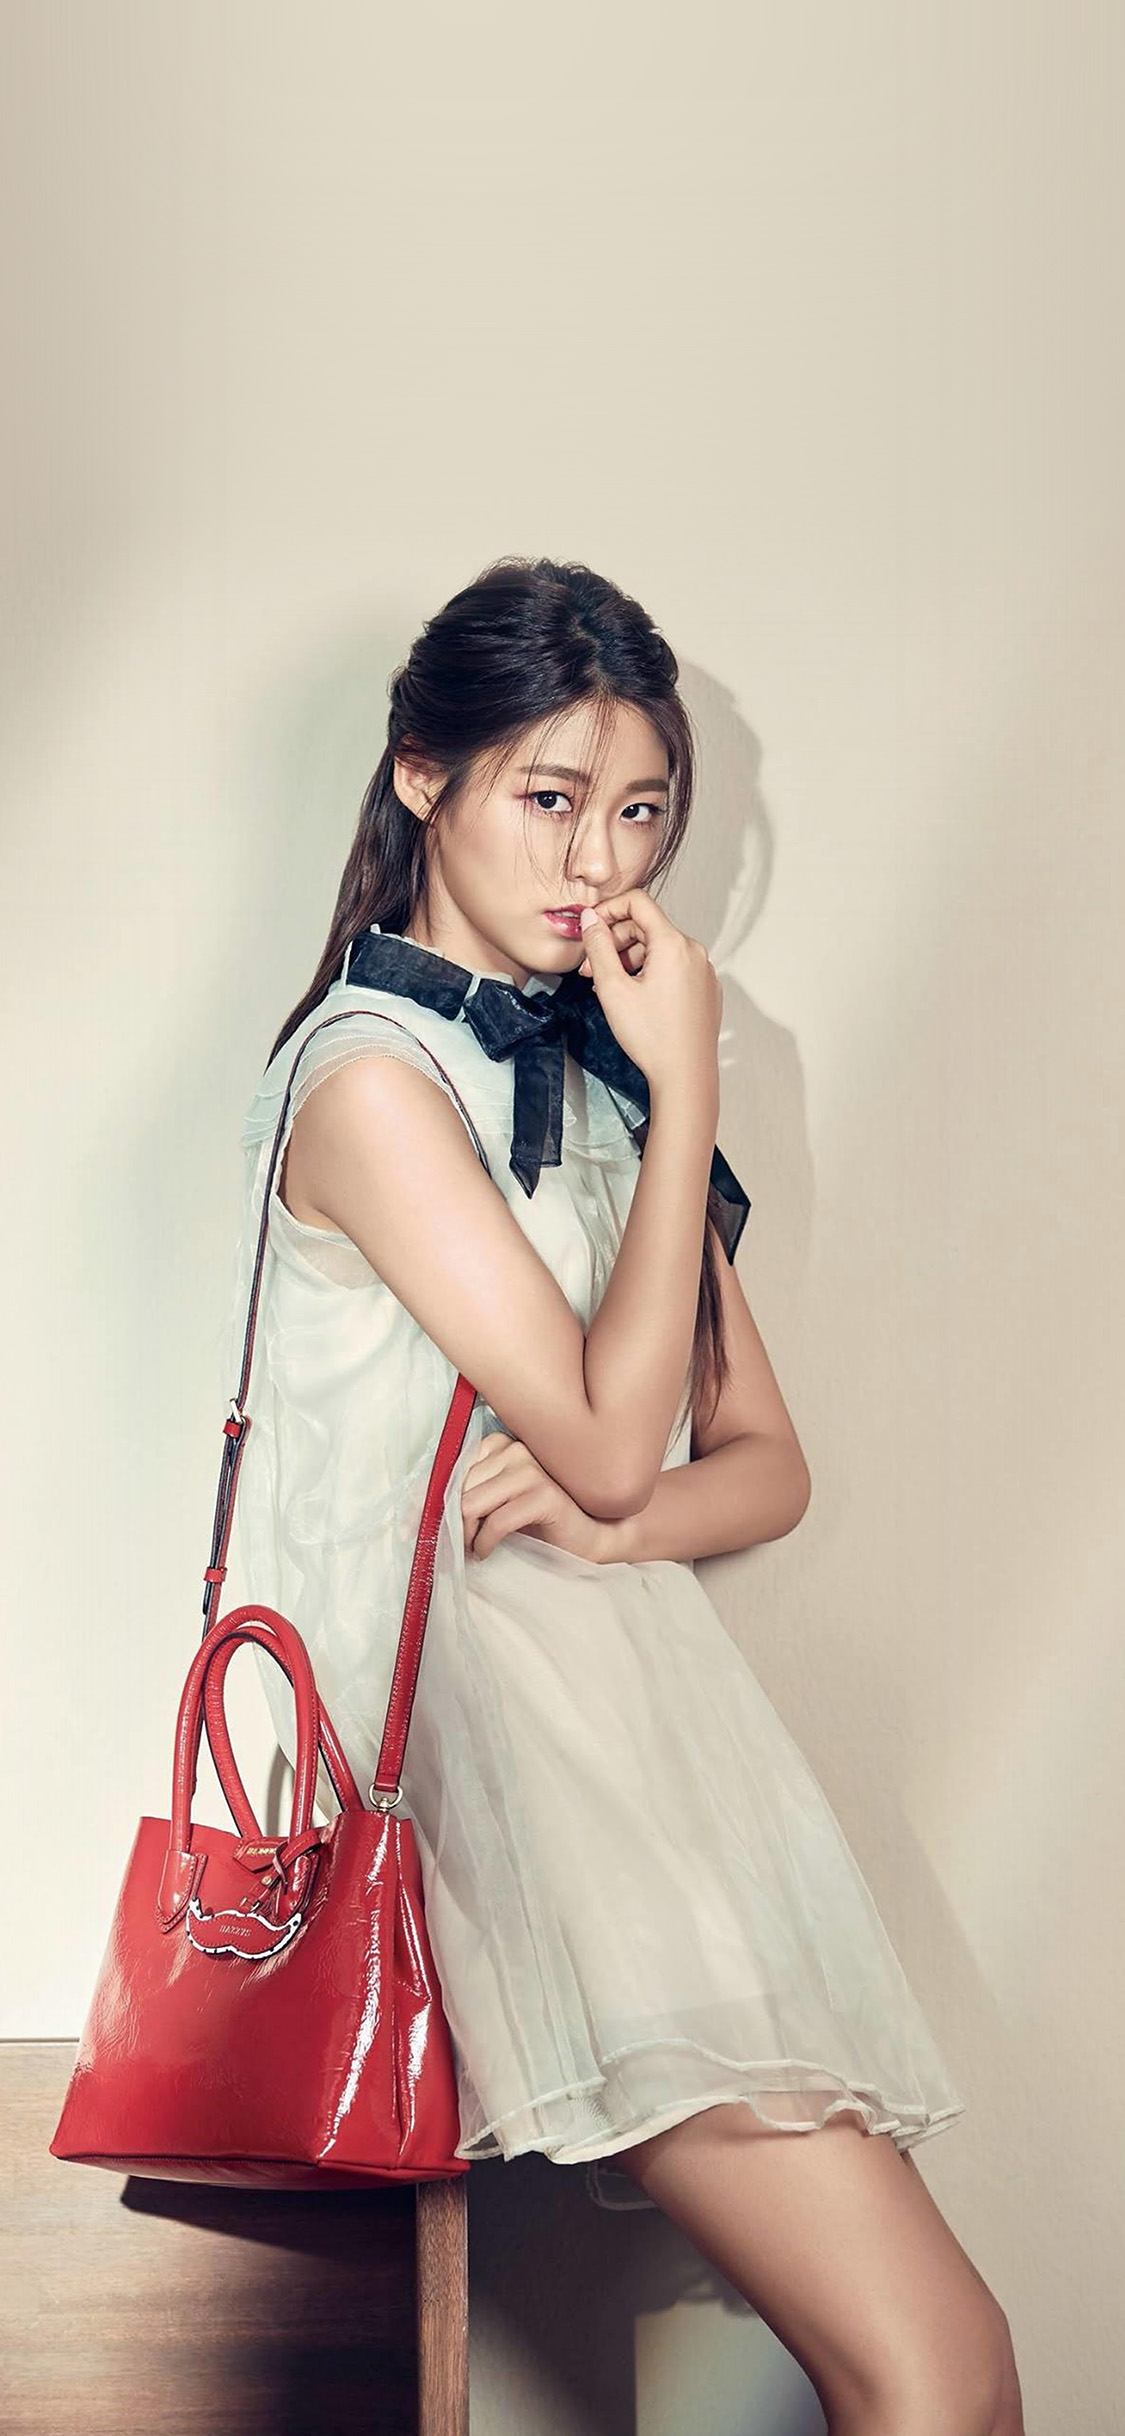 iPhonexpapers.com-Apple-iPhone-wallpaper-hq73-kpop-girl-sulhyun-red-bag